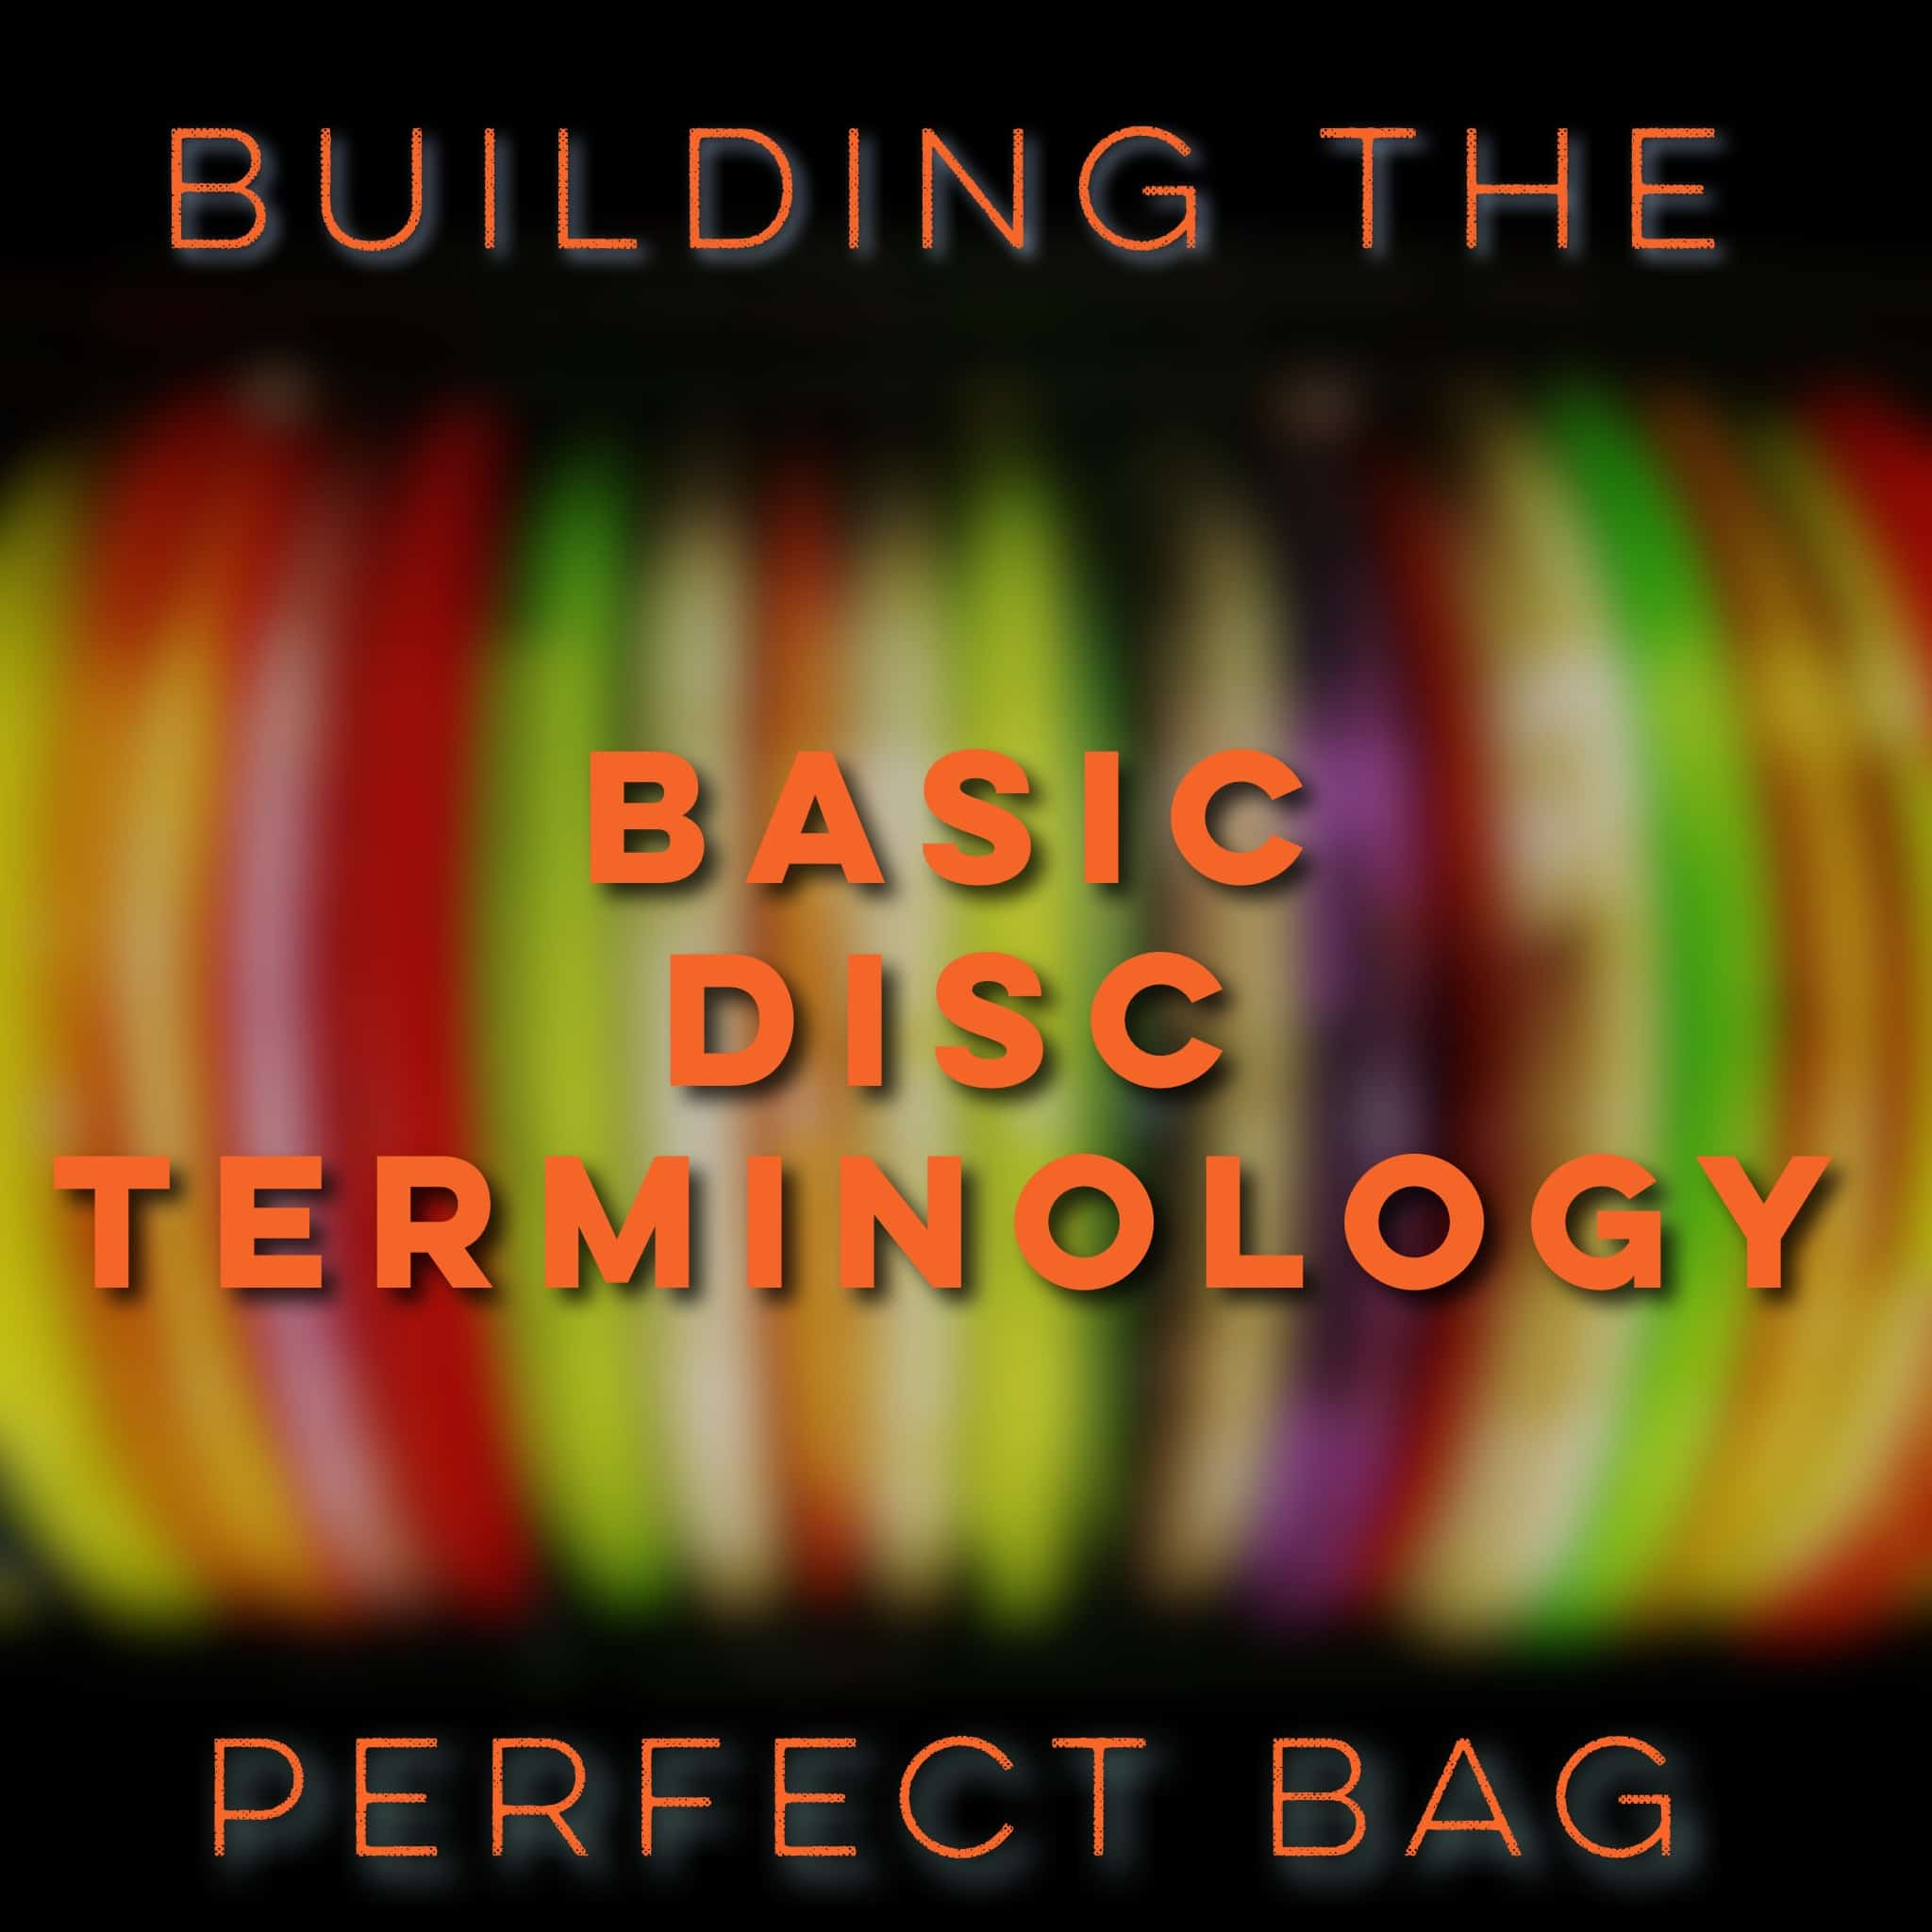 basic disc terminology